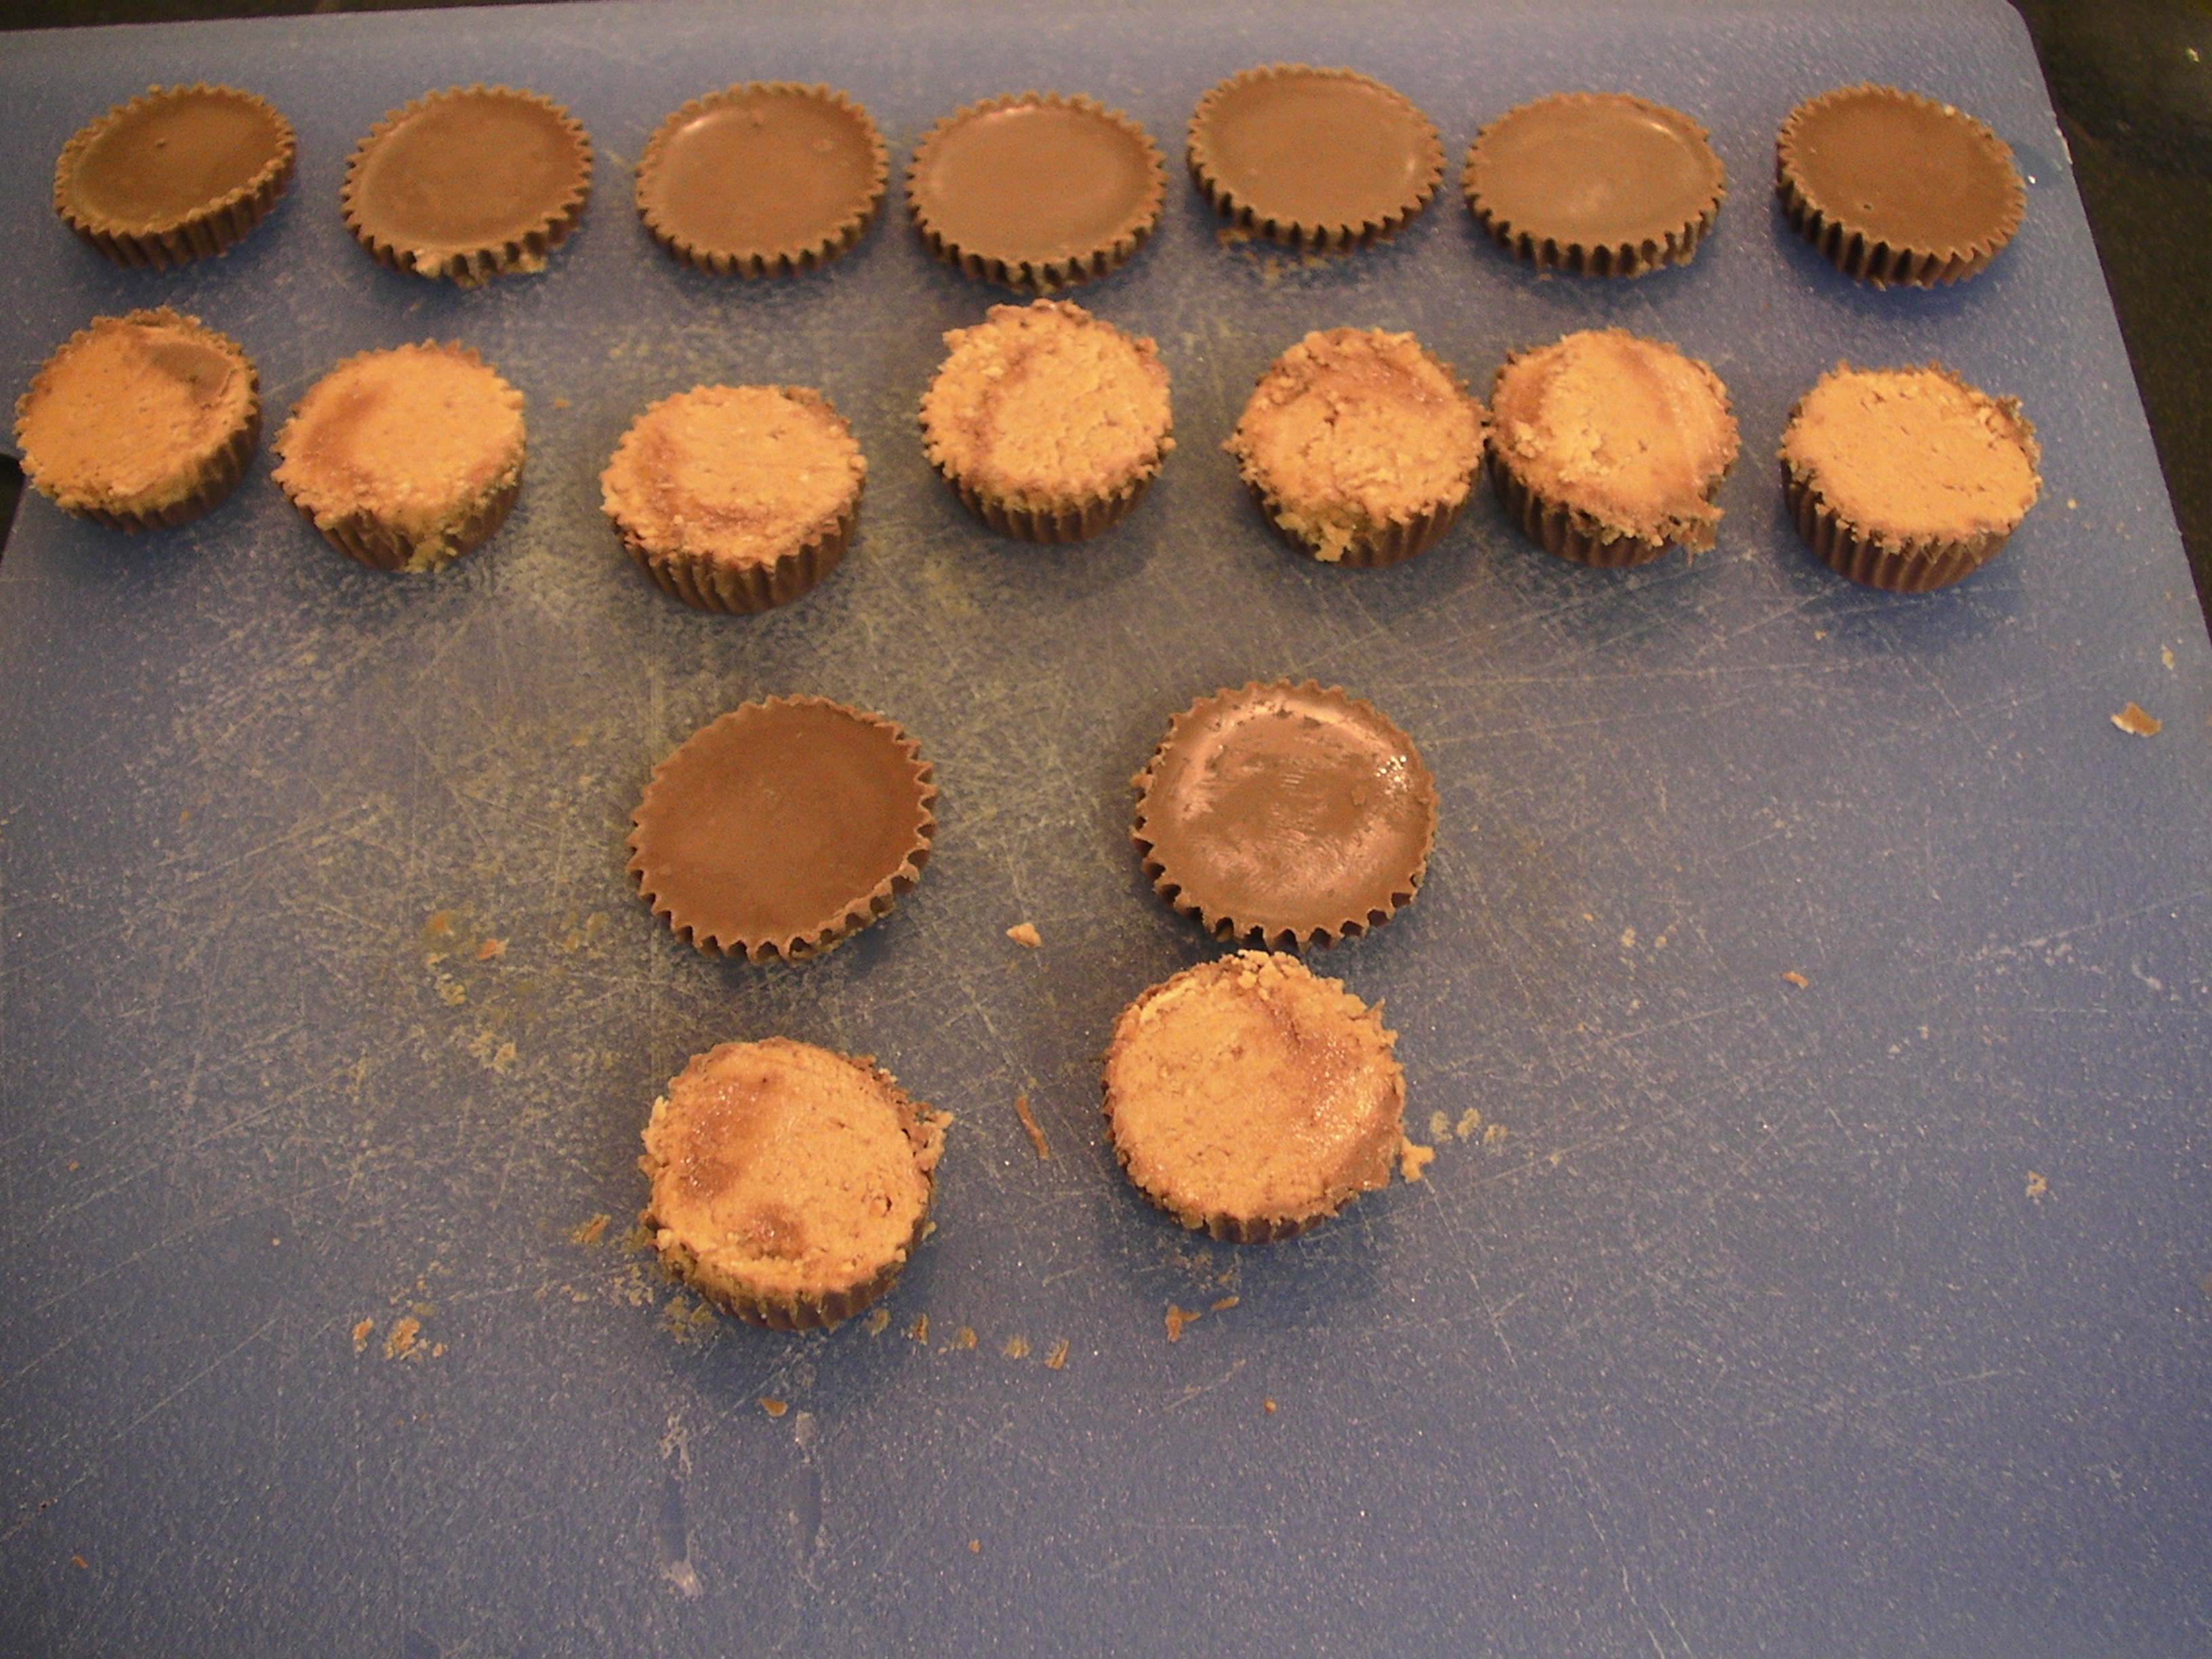 Picture of Half a Peanut Butter Cup - Divided - Half Inside With a Topper